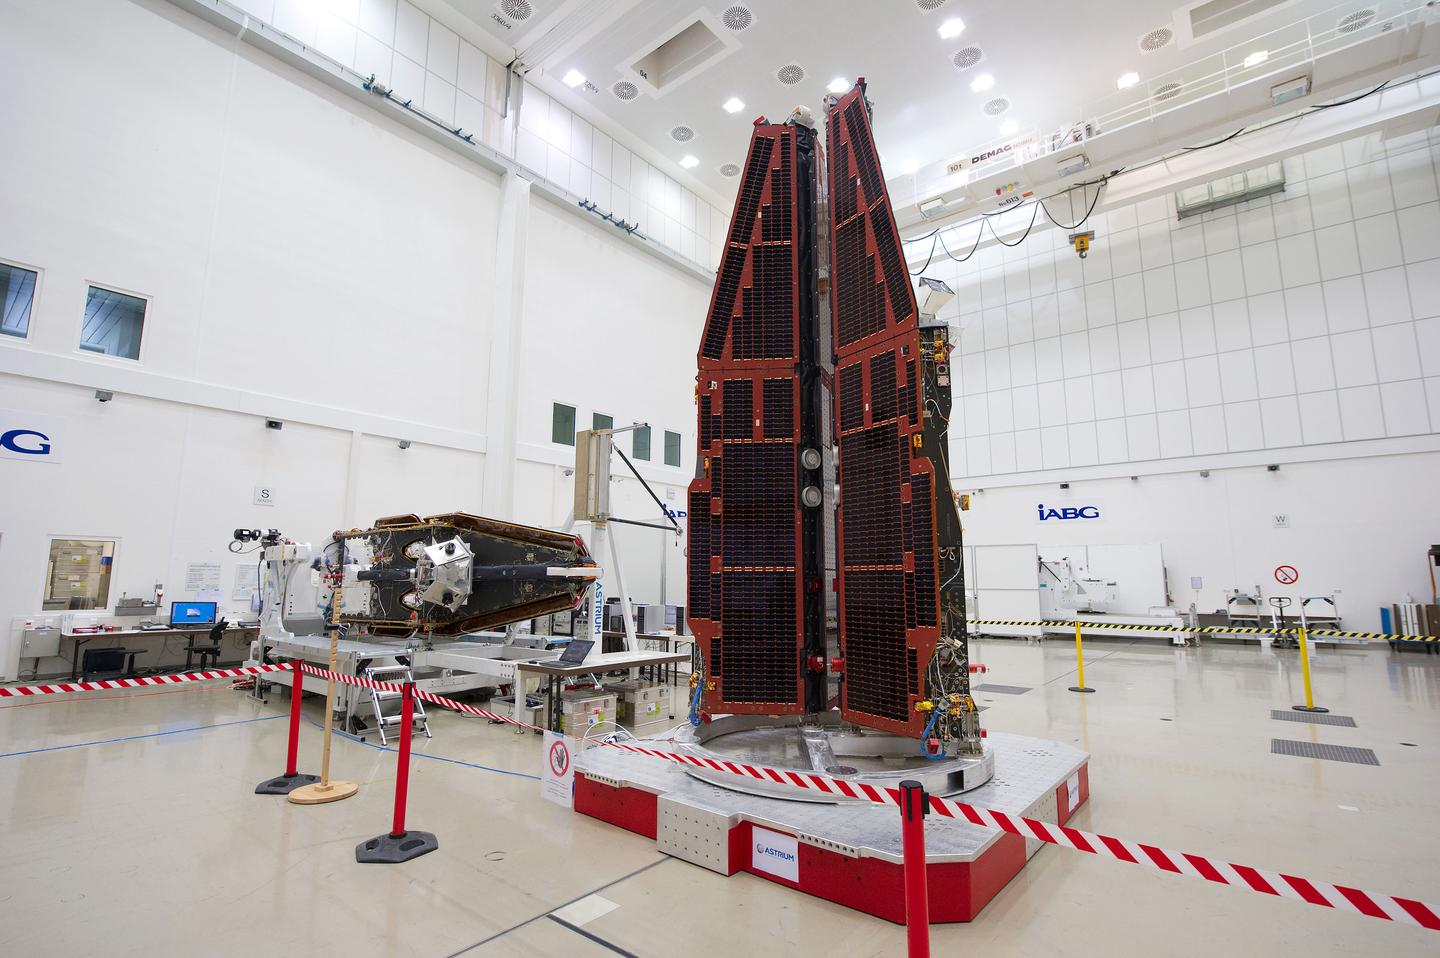 The Swarm constellation packed for launch (Photo: ESA)